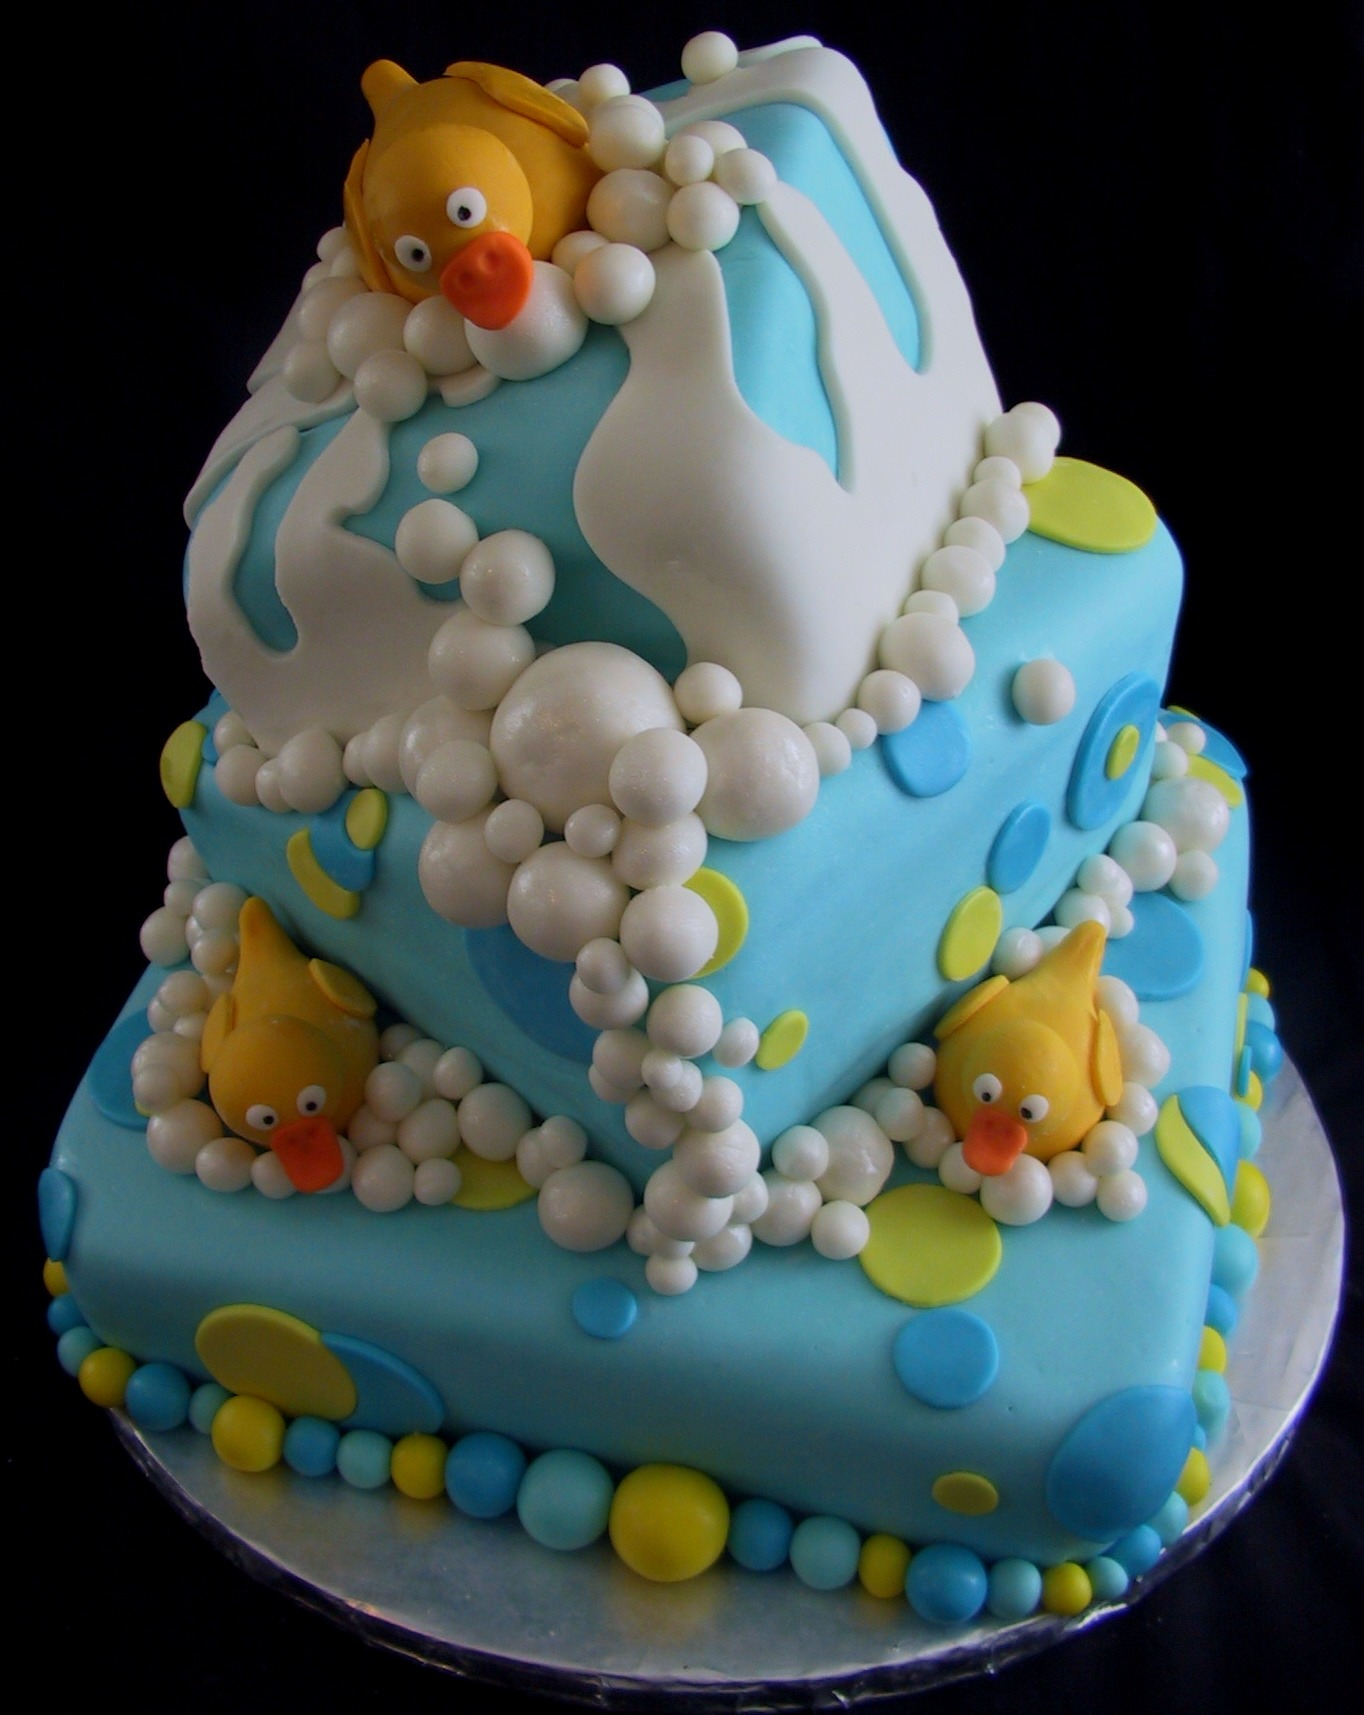 Cake Designs For Baby : 70 Baby Shower Cakes and Cupcakes Ideas